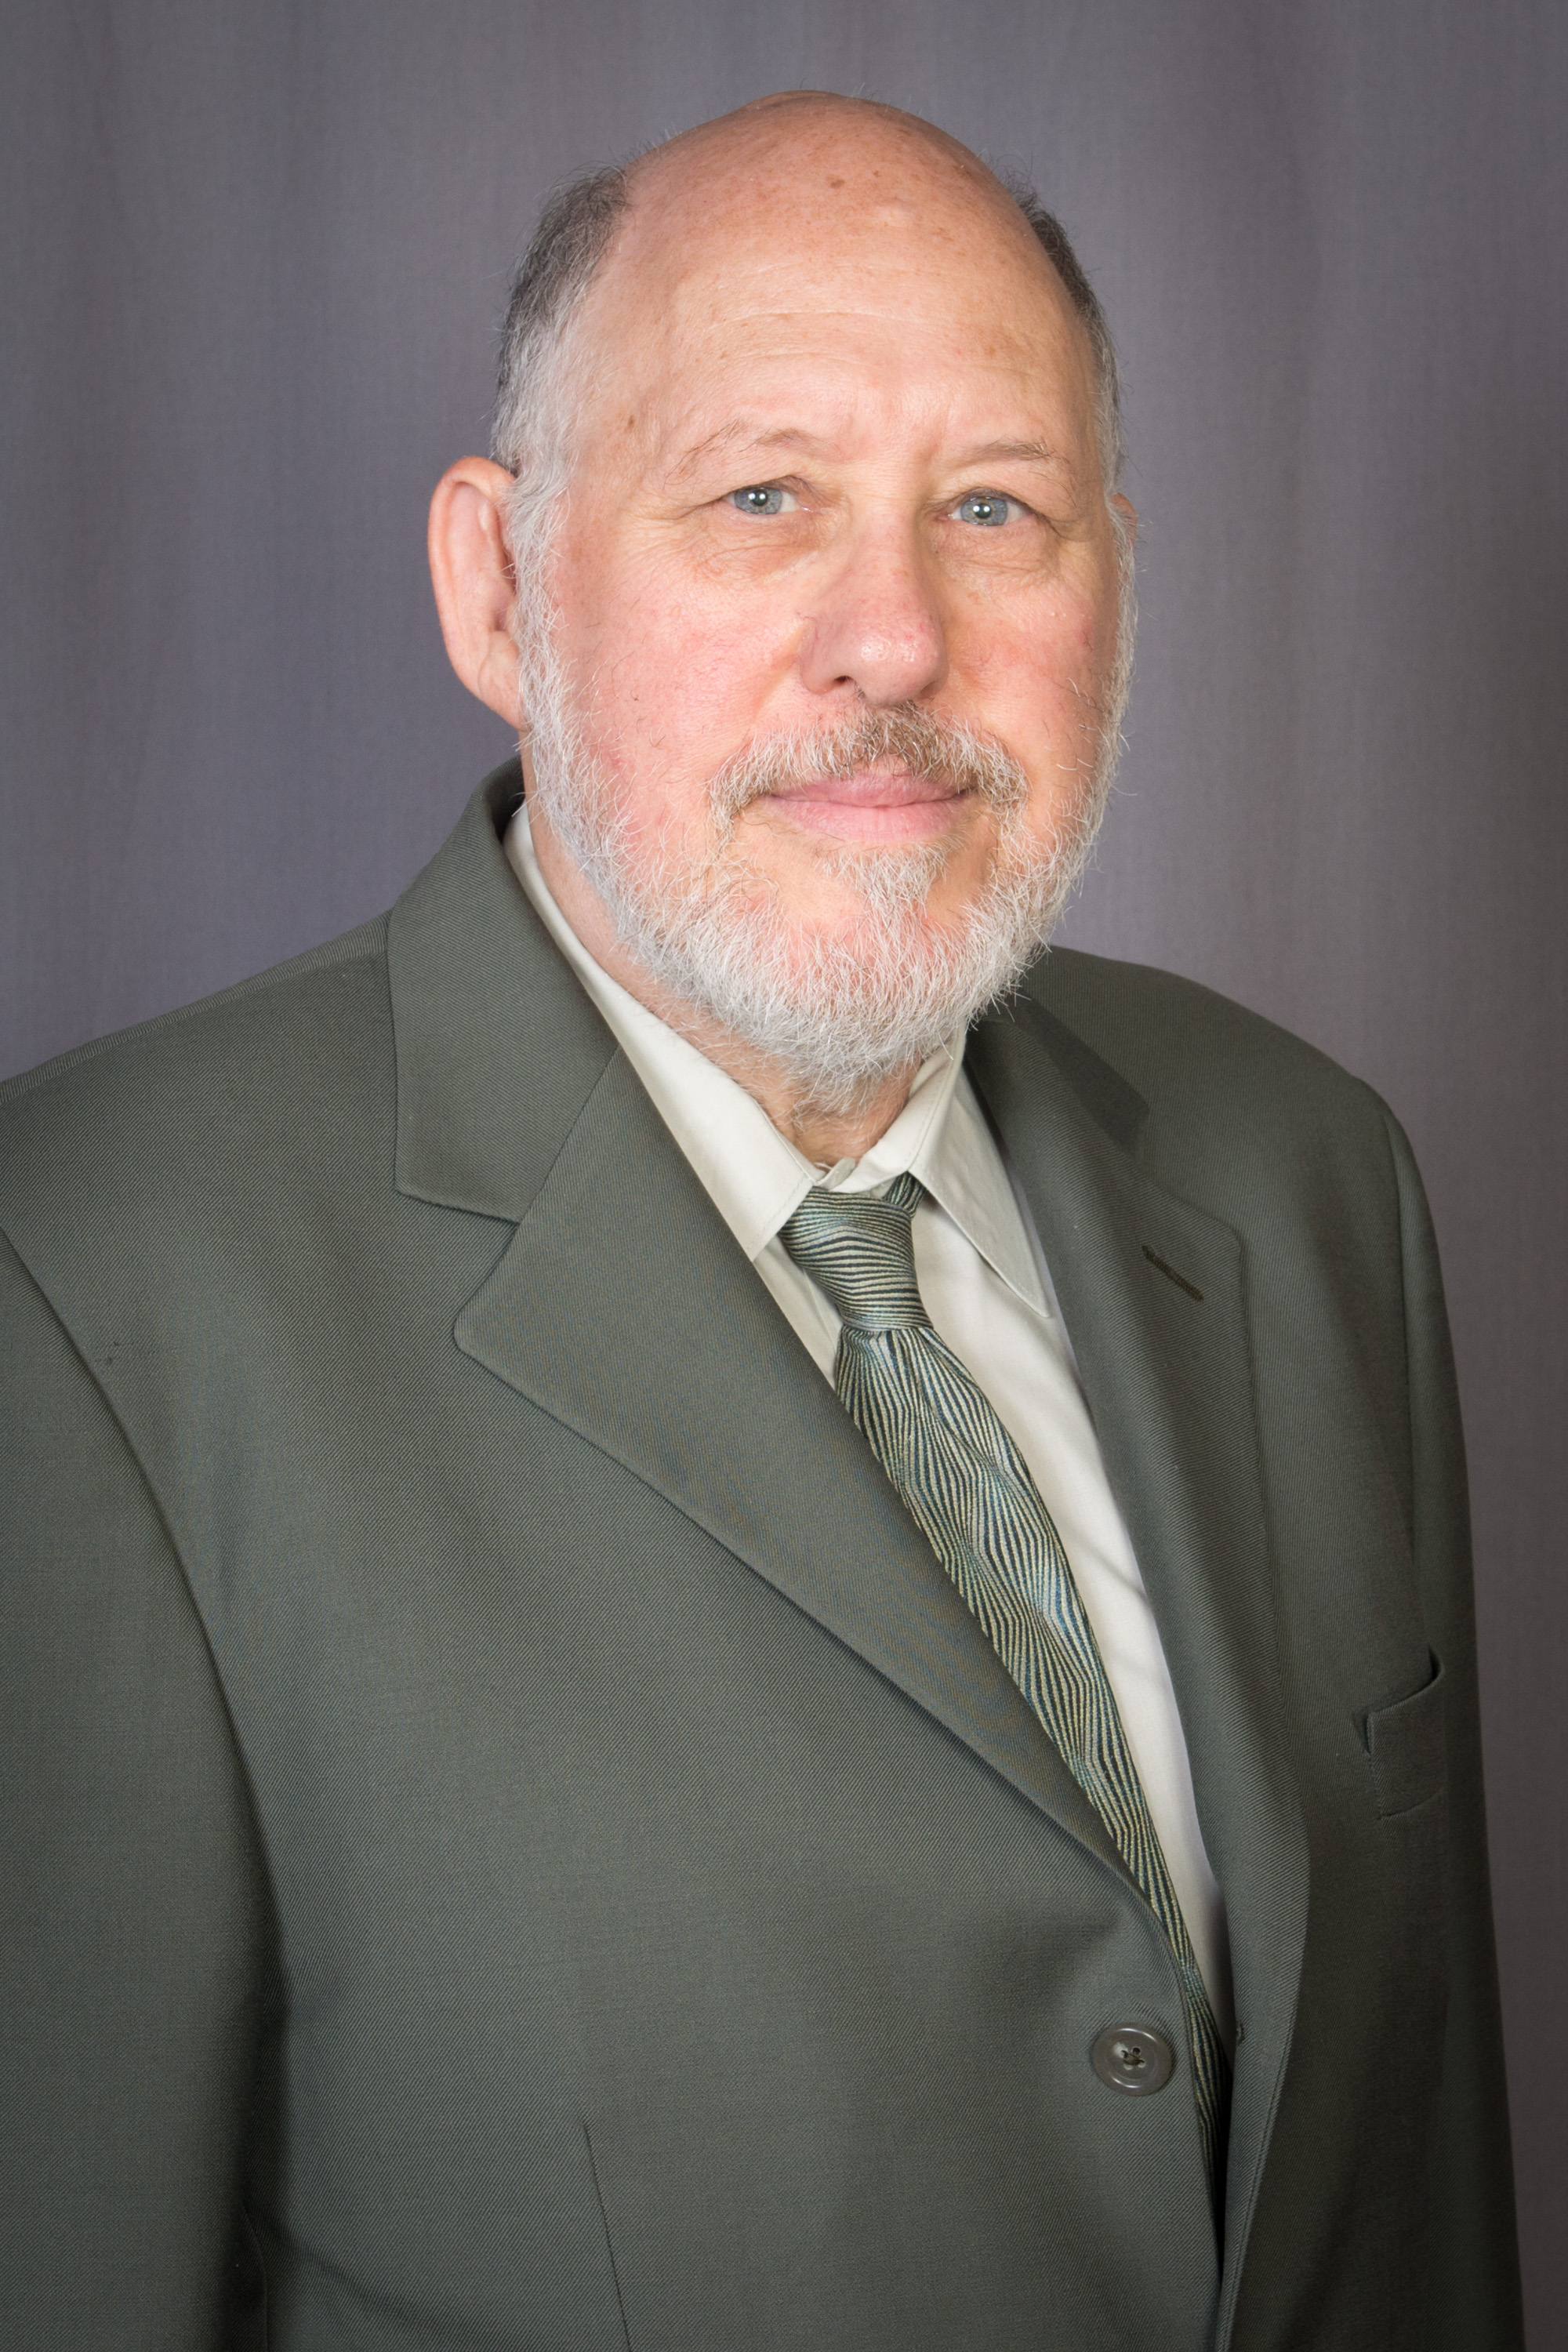 headshot of Dr. Landsberger